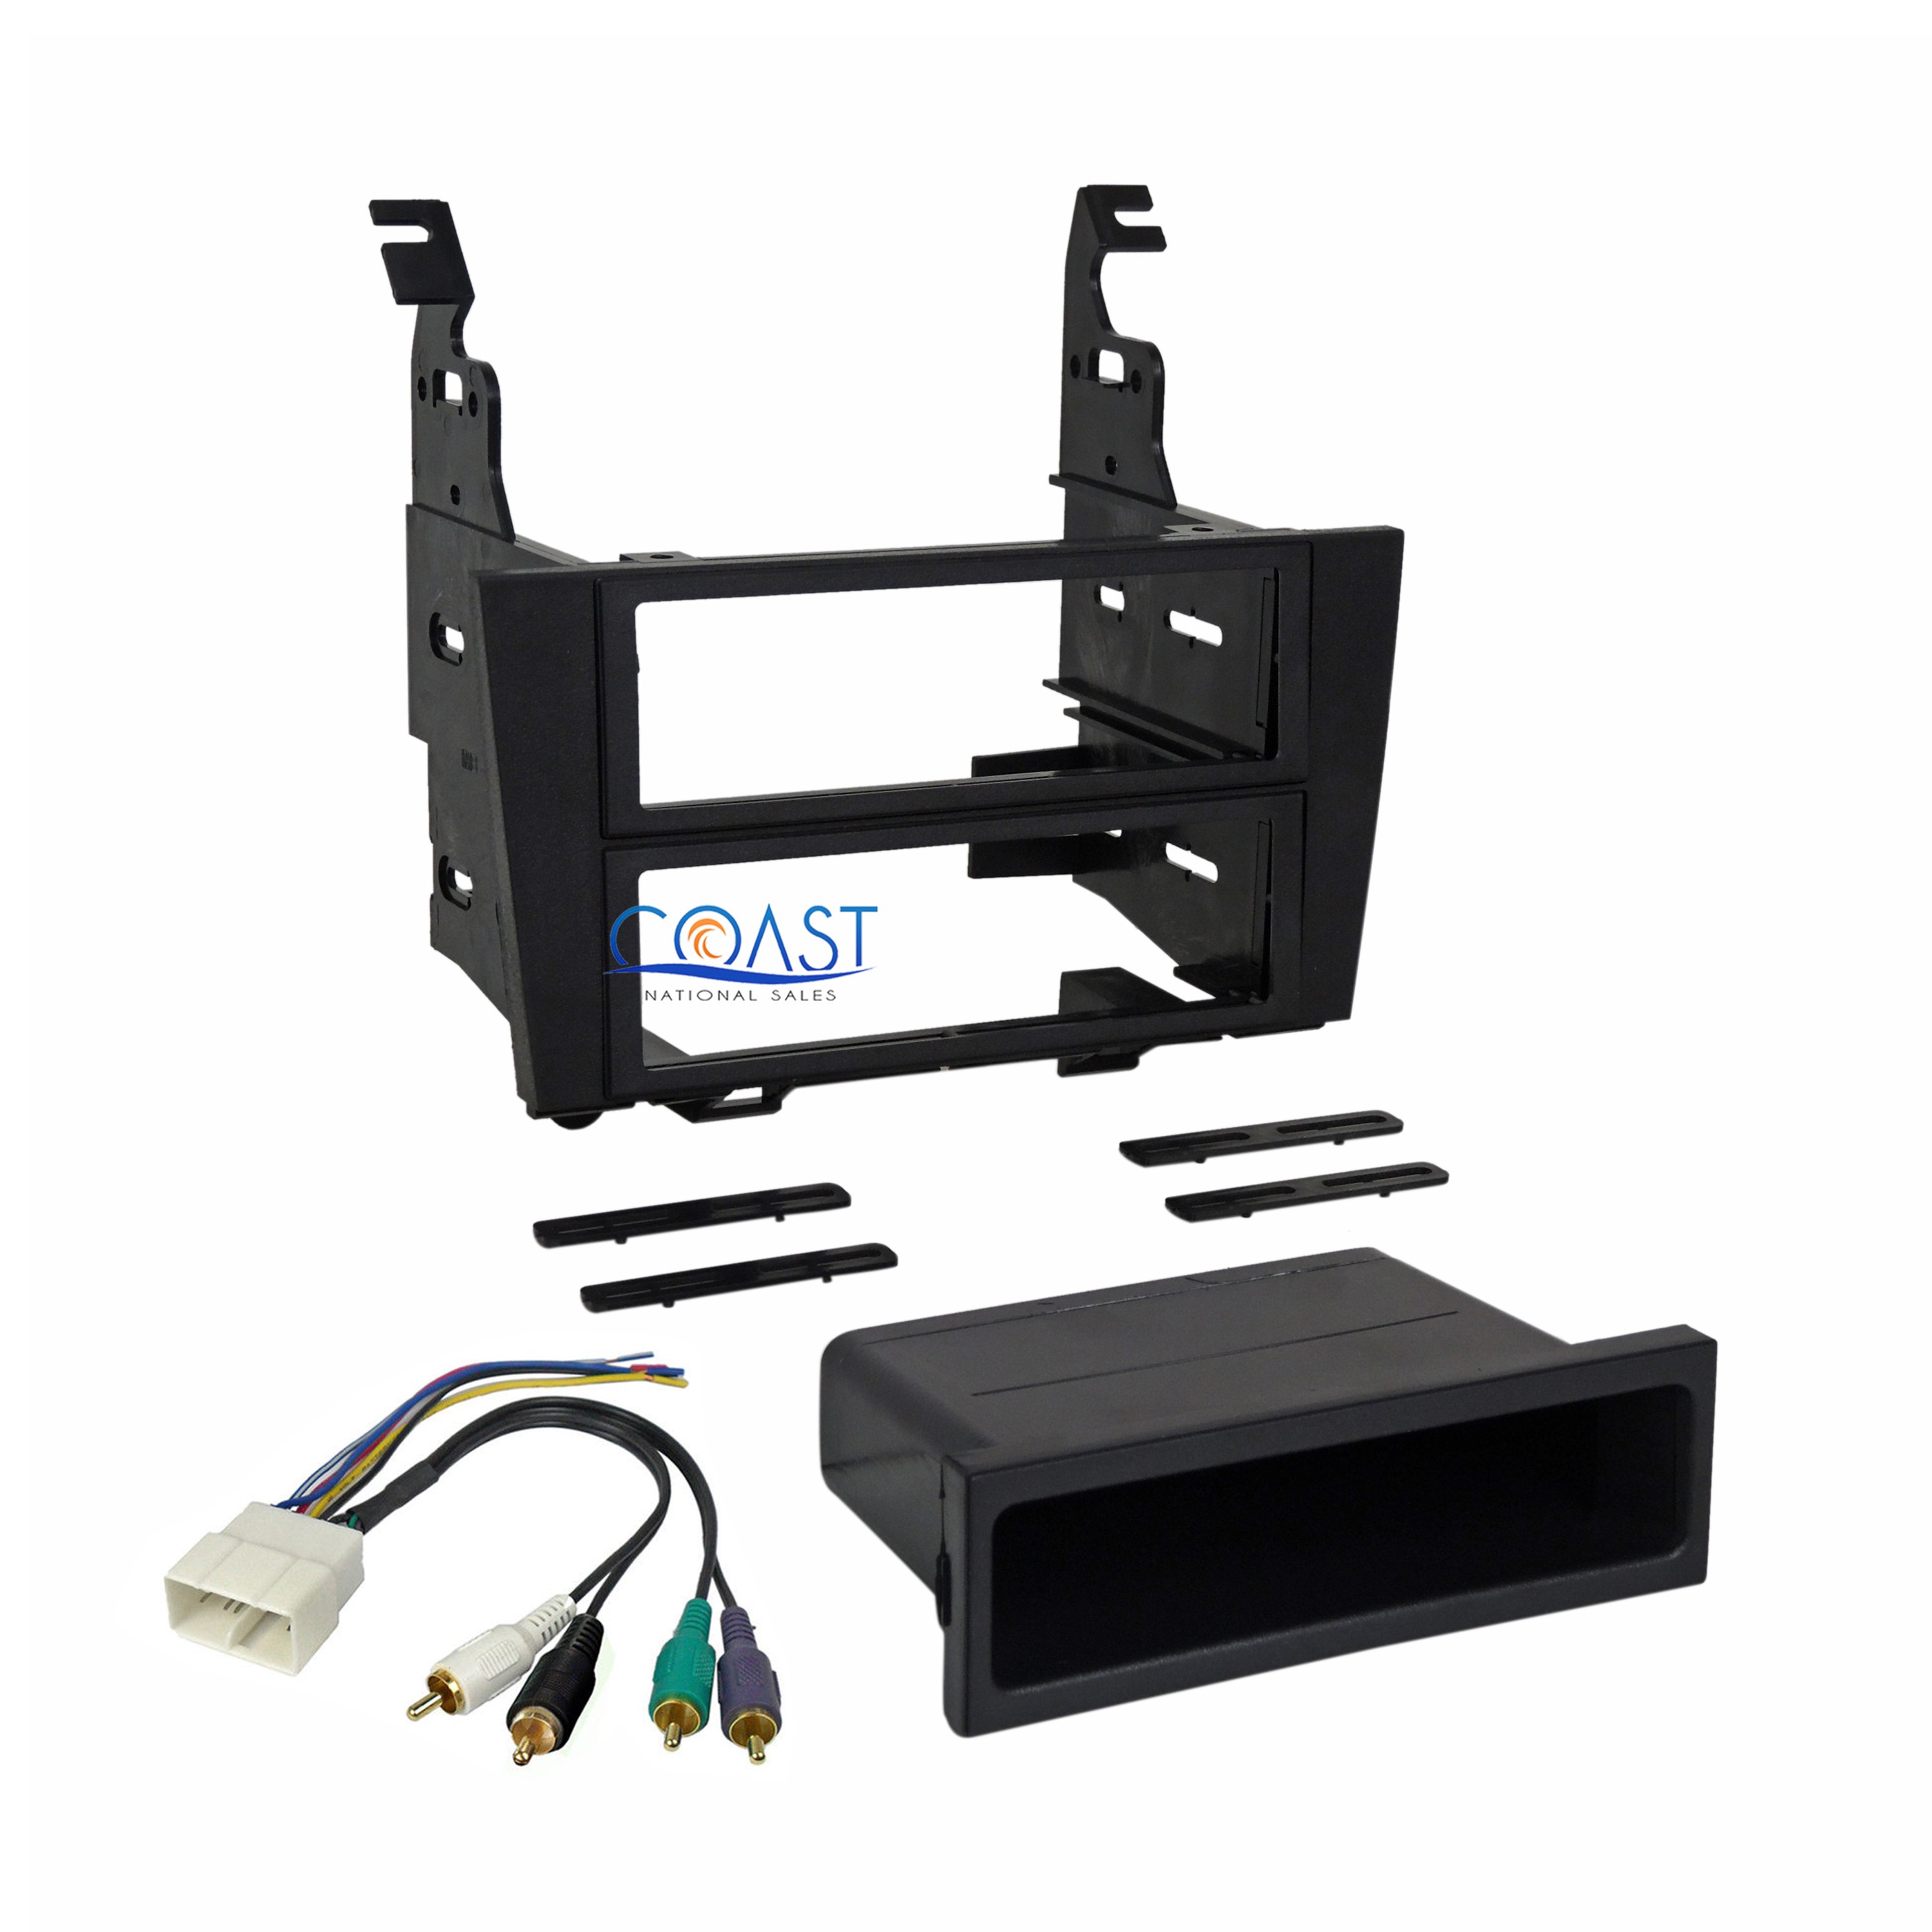 details about car radio stereo single din install dash kit harness for 1992 1996 lexus es300 lexus es300 330 in dash double din